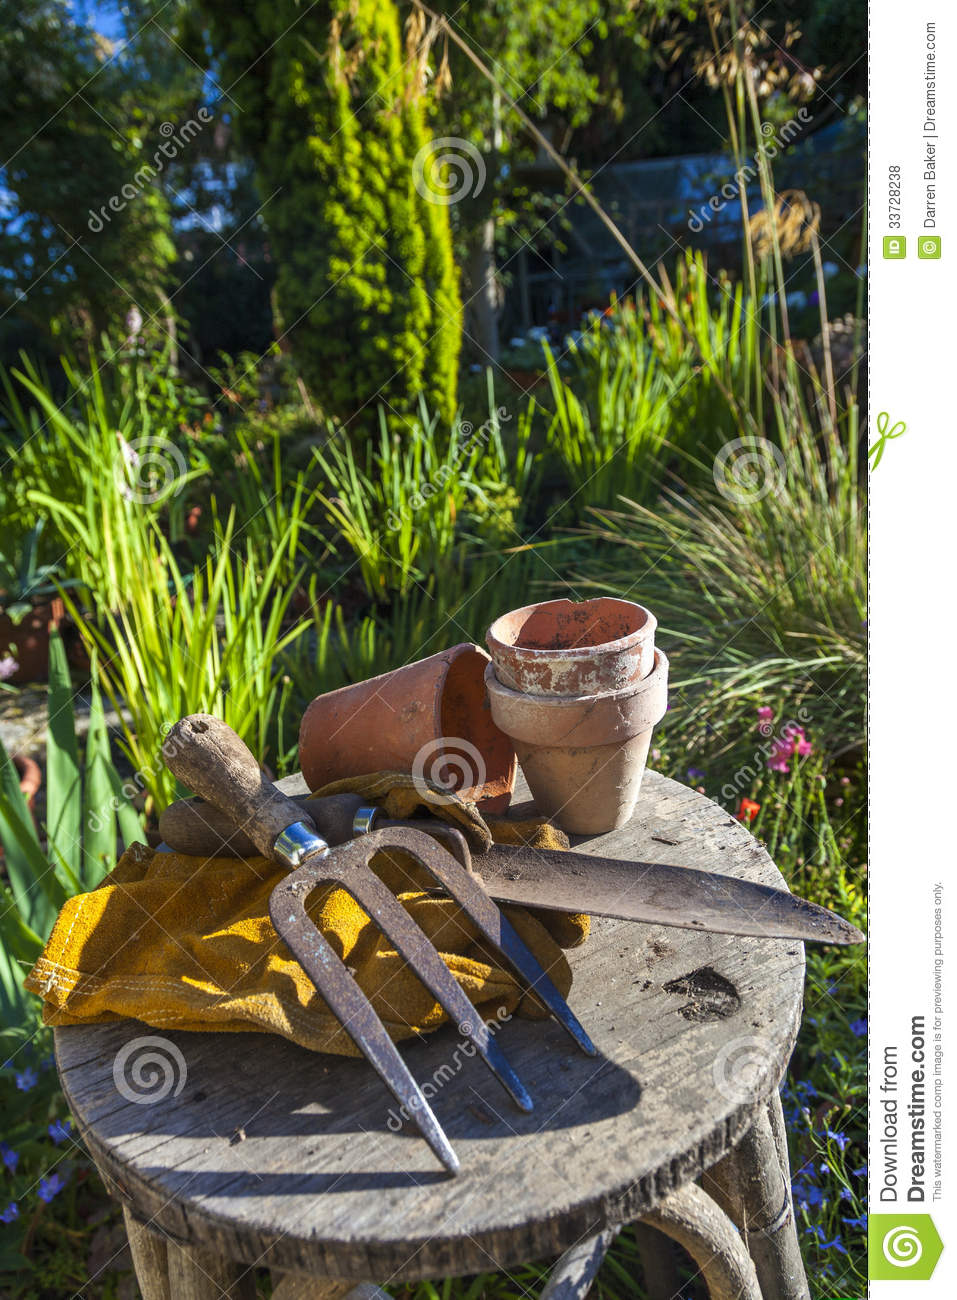 Gardening Royalty Free Stock Photos Image 33728238